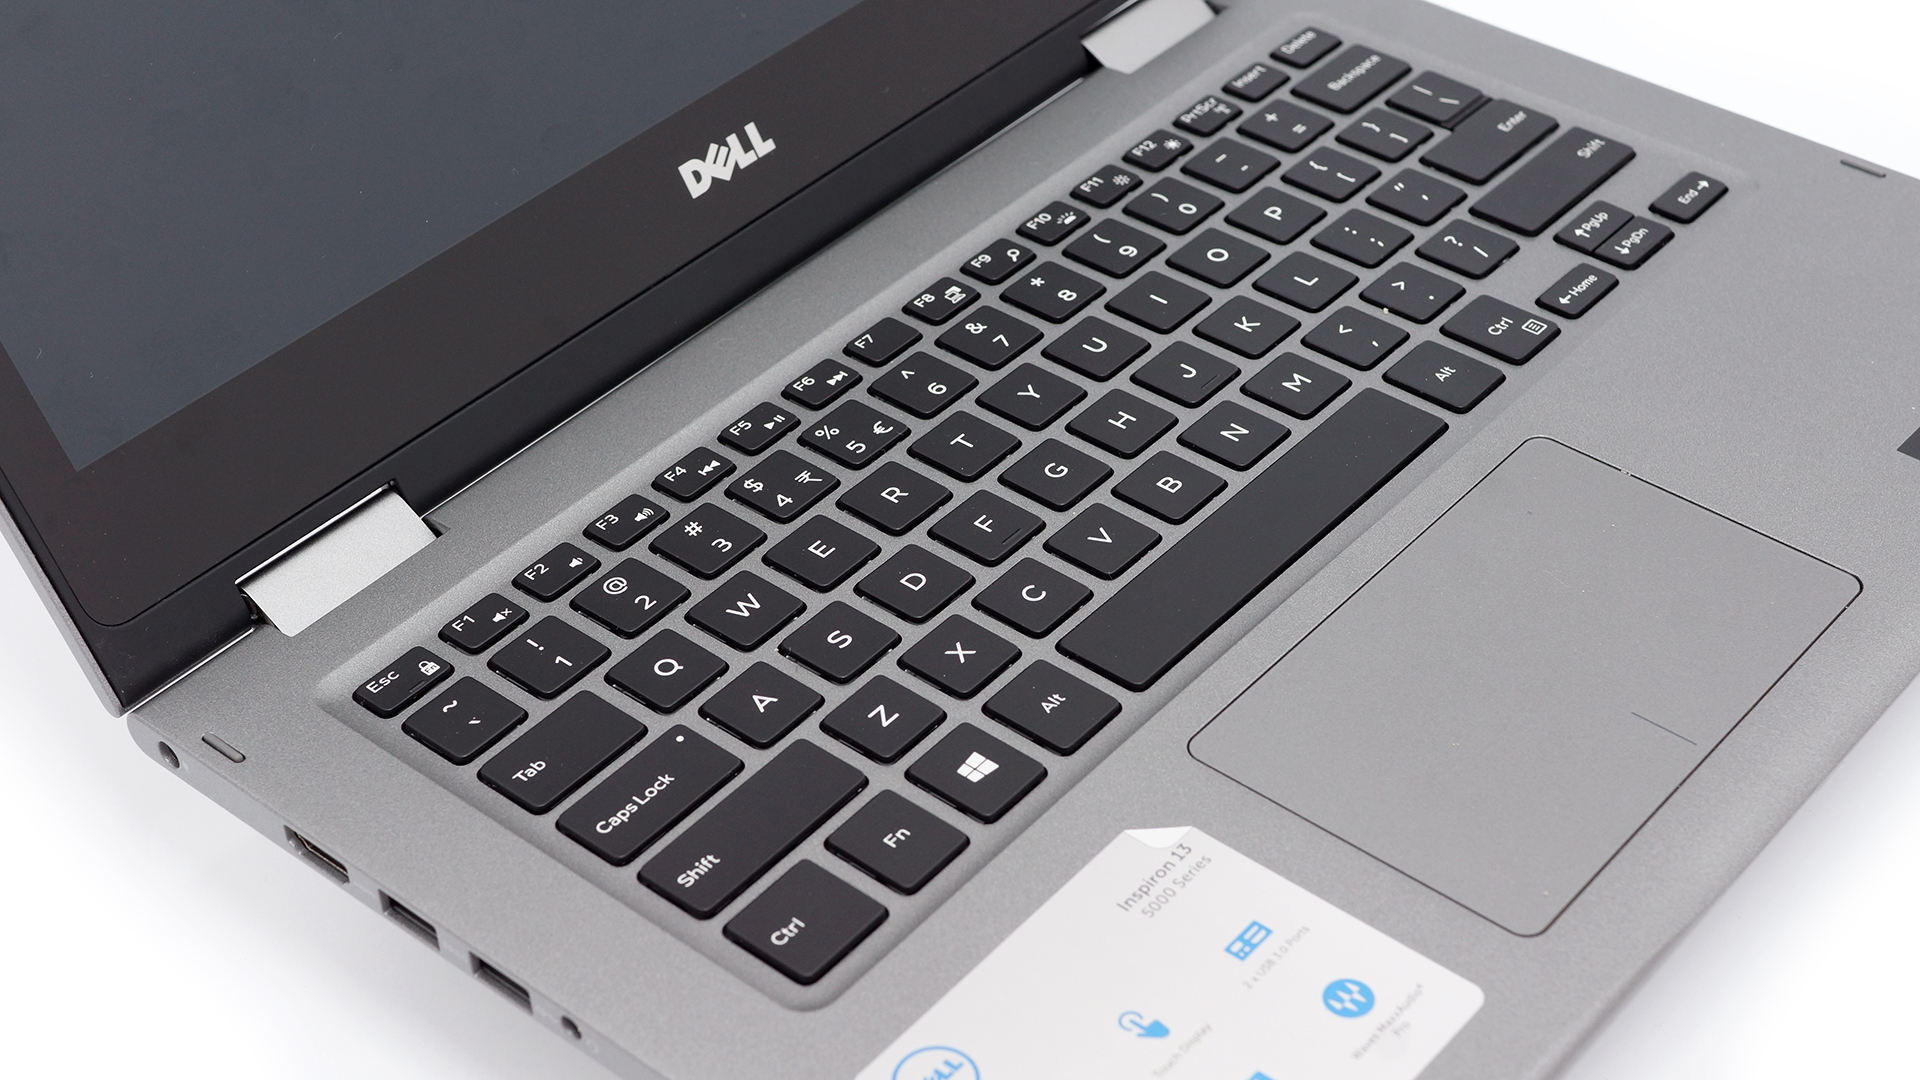 Dell Inspiron 13 5379 review – a 2015 laptop with 2017 performance